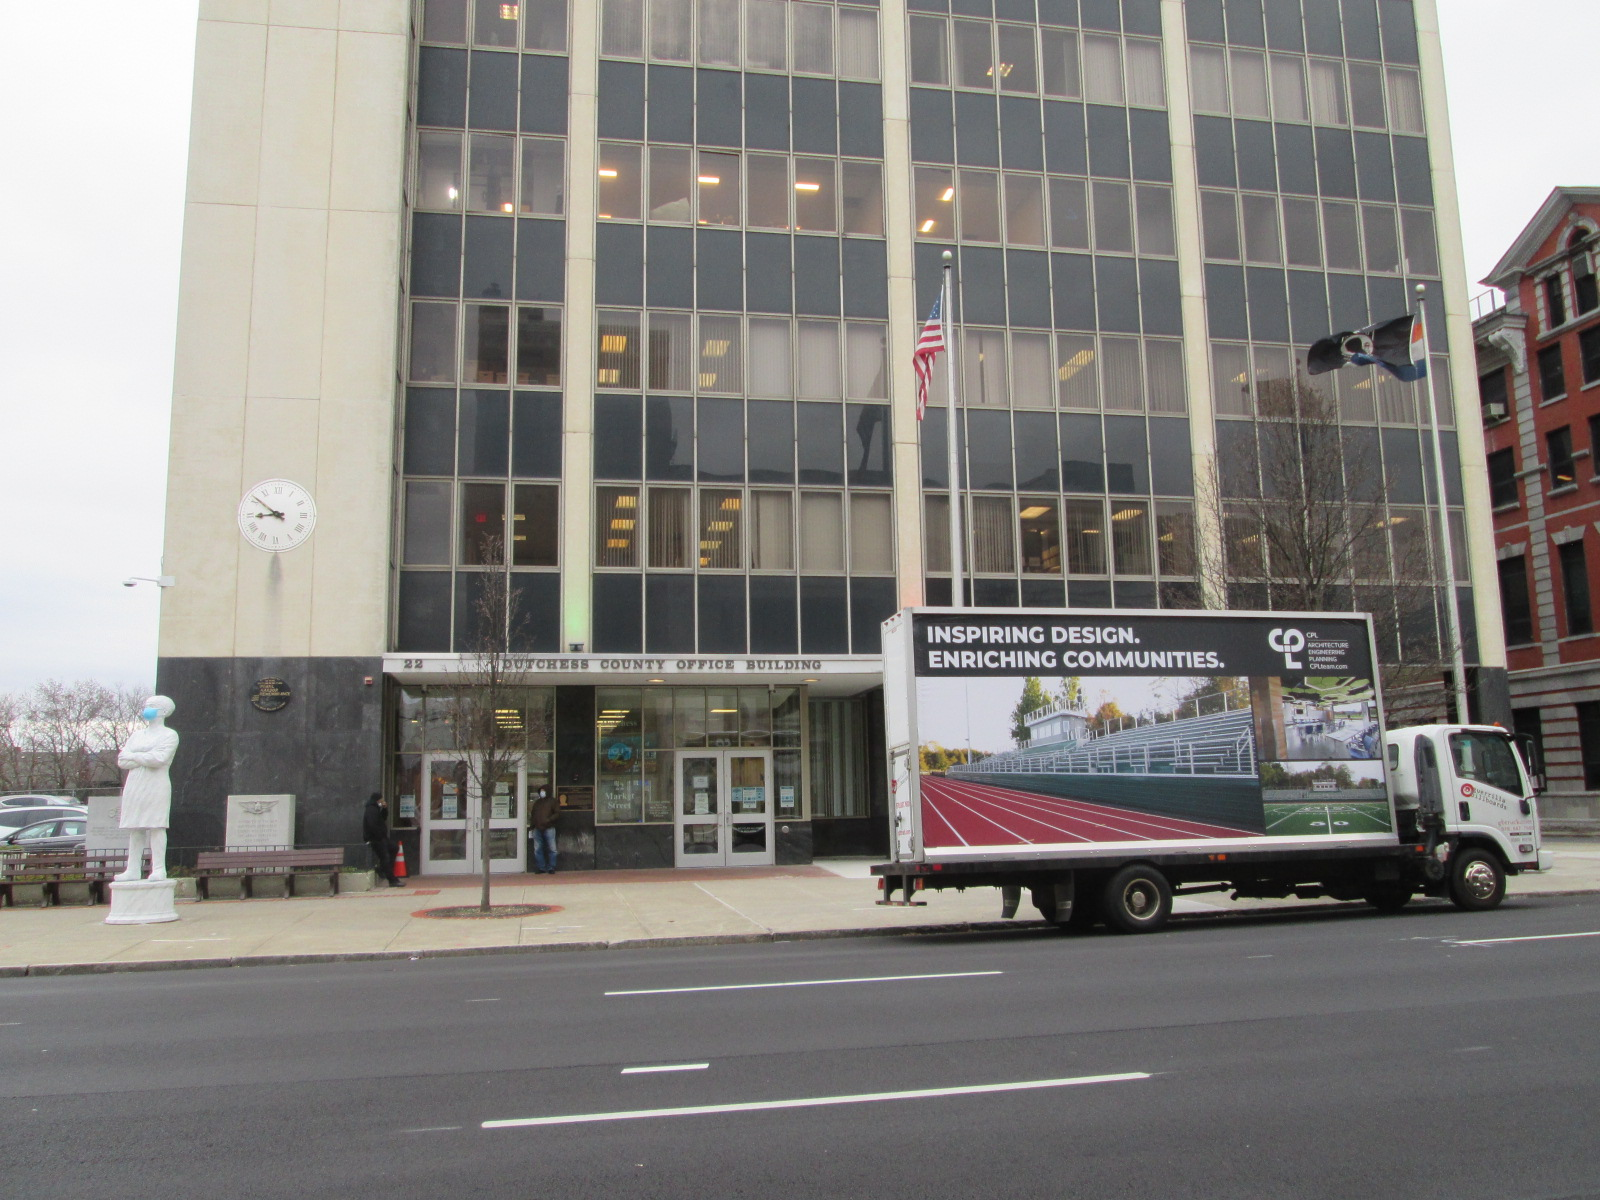 Billboard truck stopped in front of the Dutchess County Office Building in Poughkeepsie NY